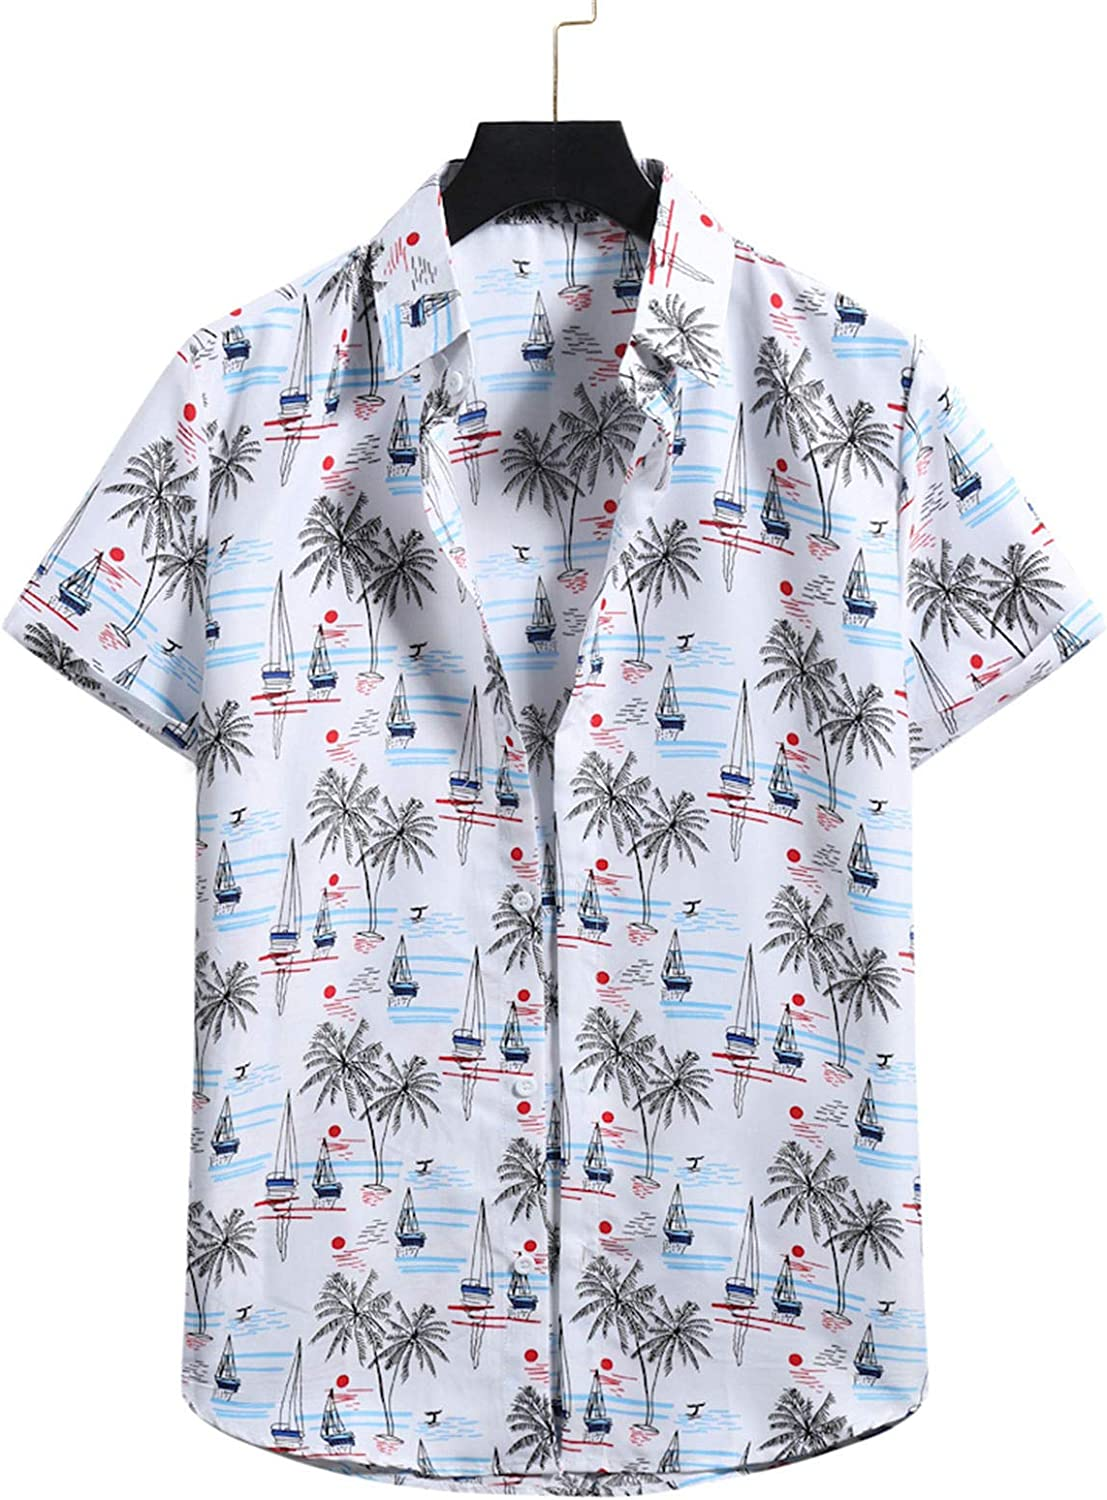 Appoi Men's Hawaiian Shirt Coconut Tree Print Relaxed-fit Button Down Short Sleeve Shirts